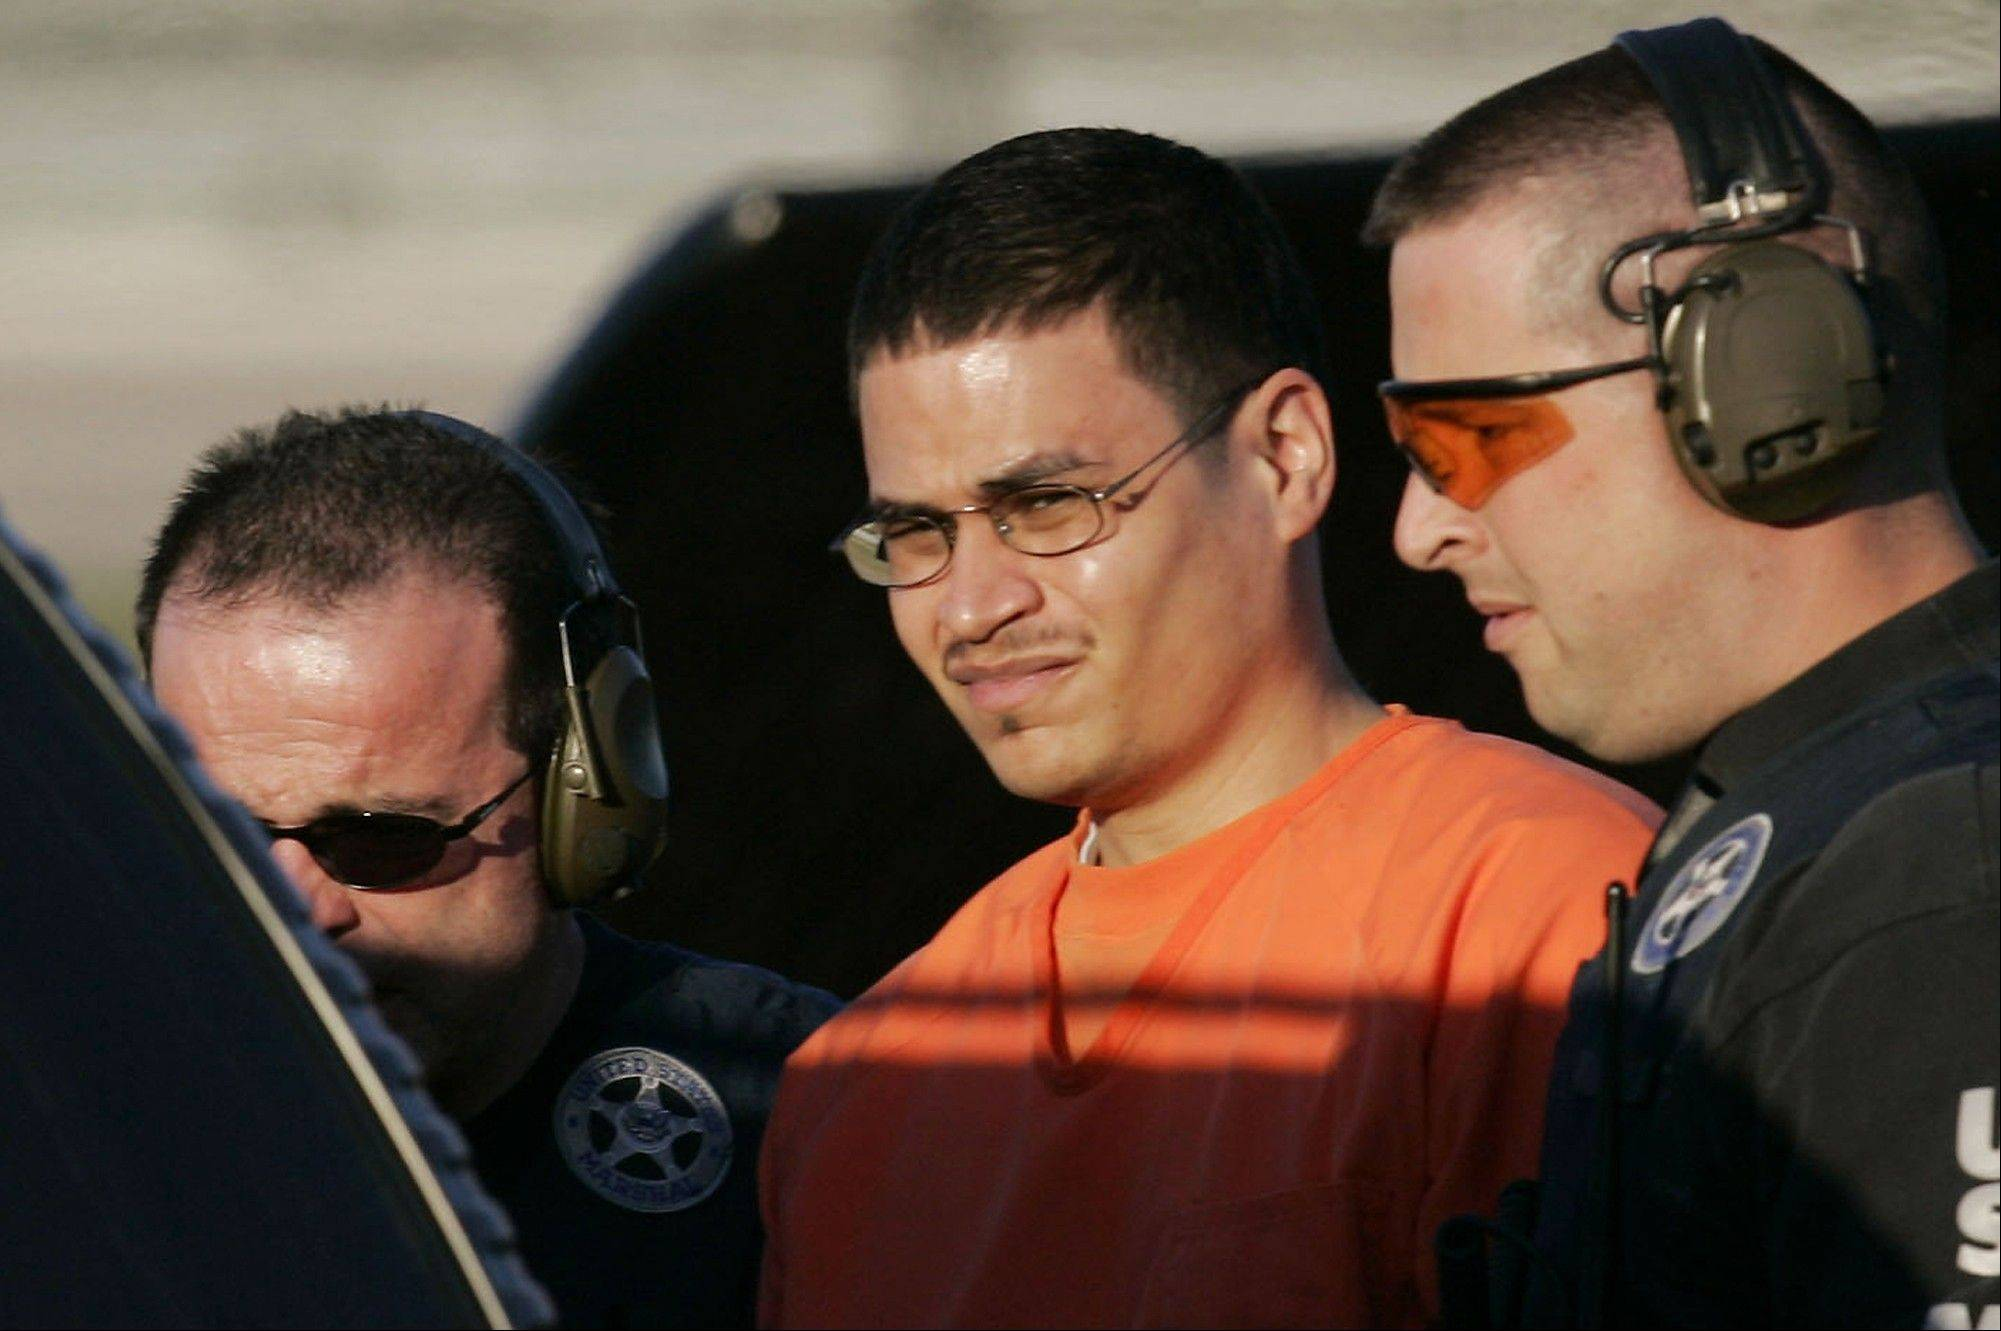 The American Civil Liberties Union says it will ask the OAS� human rights commission to investigate the U.S. government for allegedly violating the rights of convicted terrorism plotter Jose Padilla by labeling him an �enemy combatant� a decade ago and subjecting him to interrogation that amounted to torture, including sleep and sensory deprivation in solitary confinement.